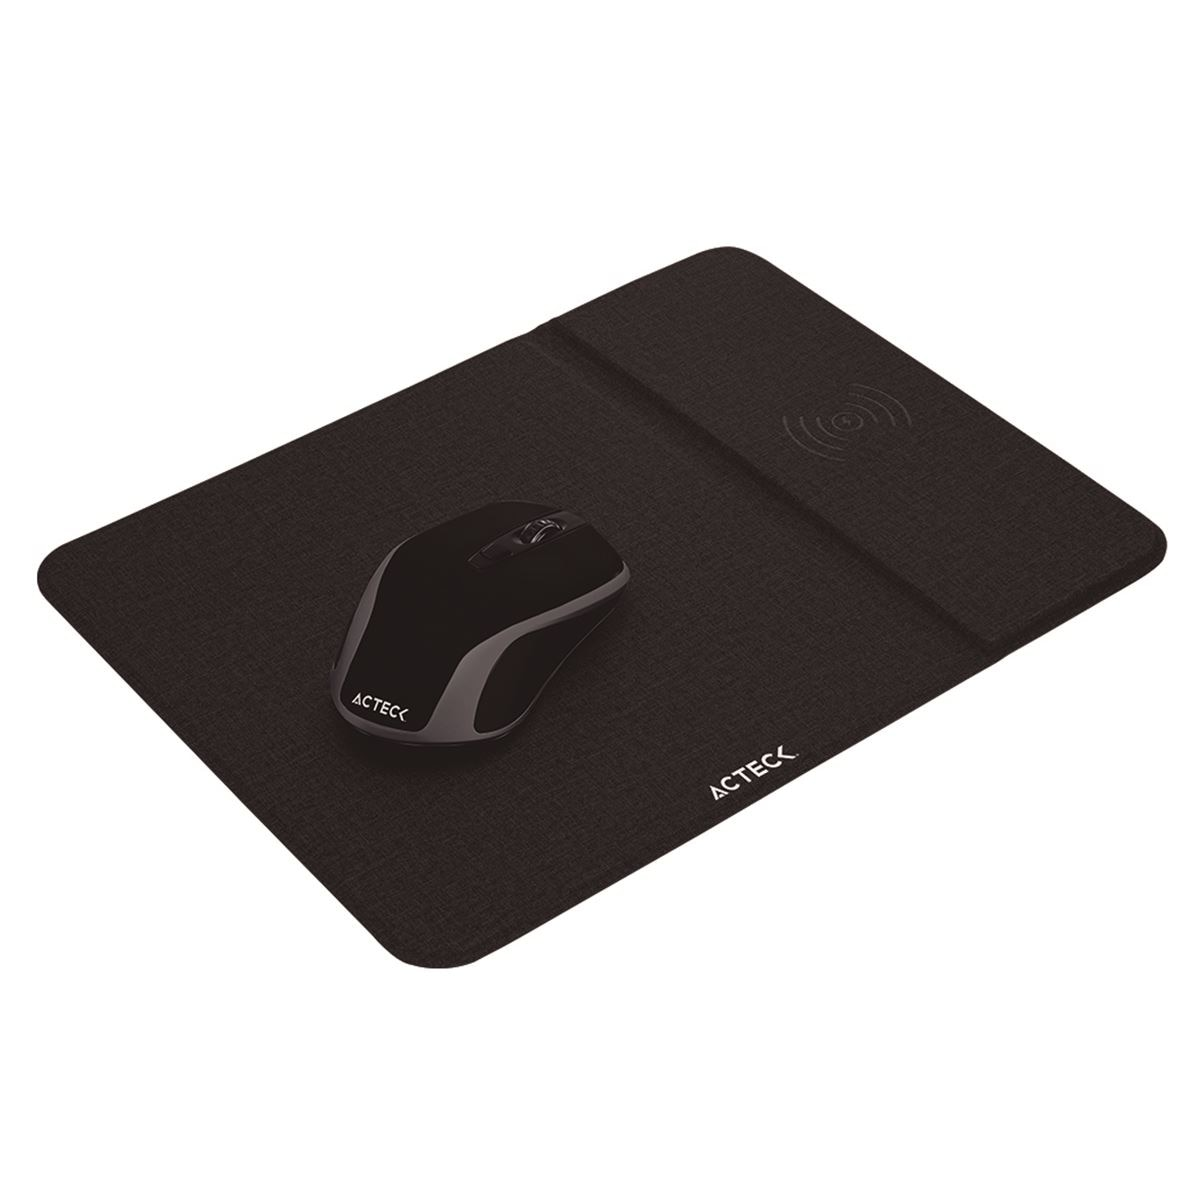 Kit Mouse Inalámbrico y Mouse Pad Acteck